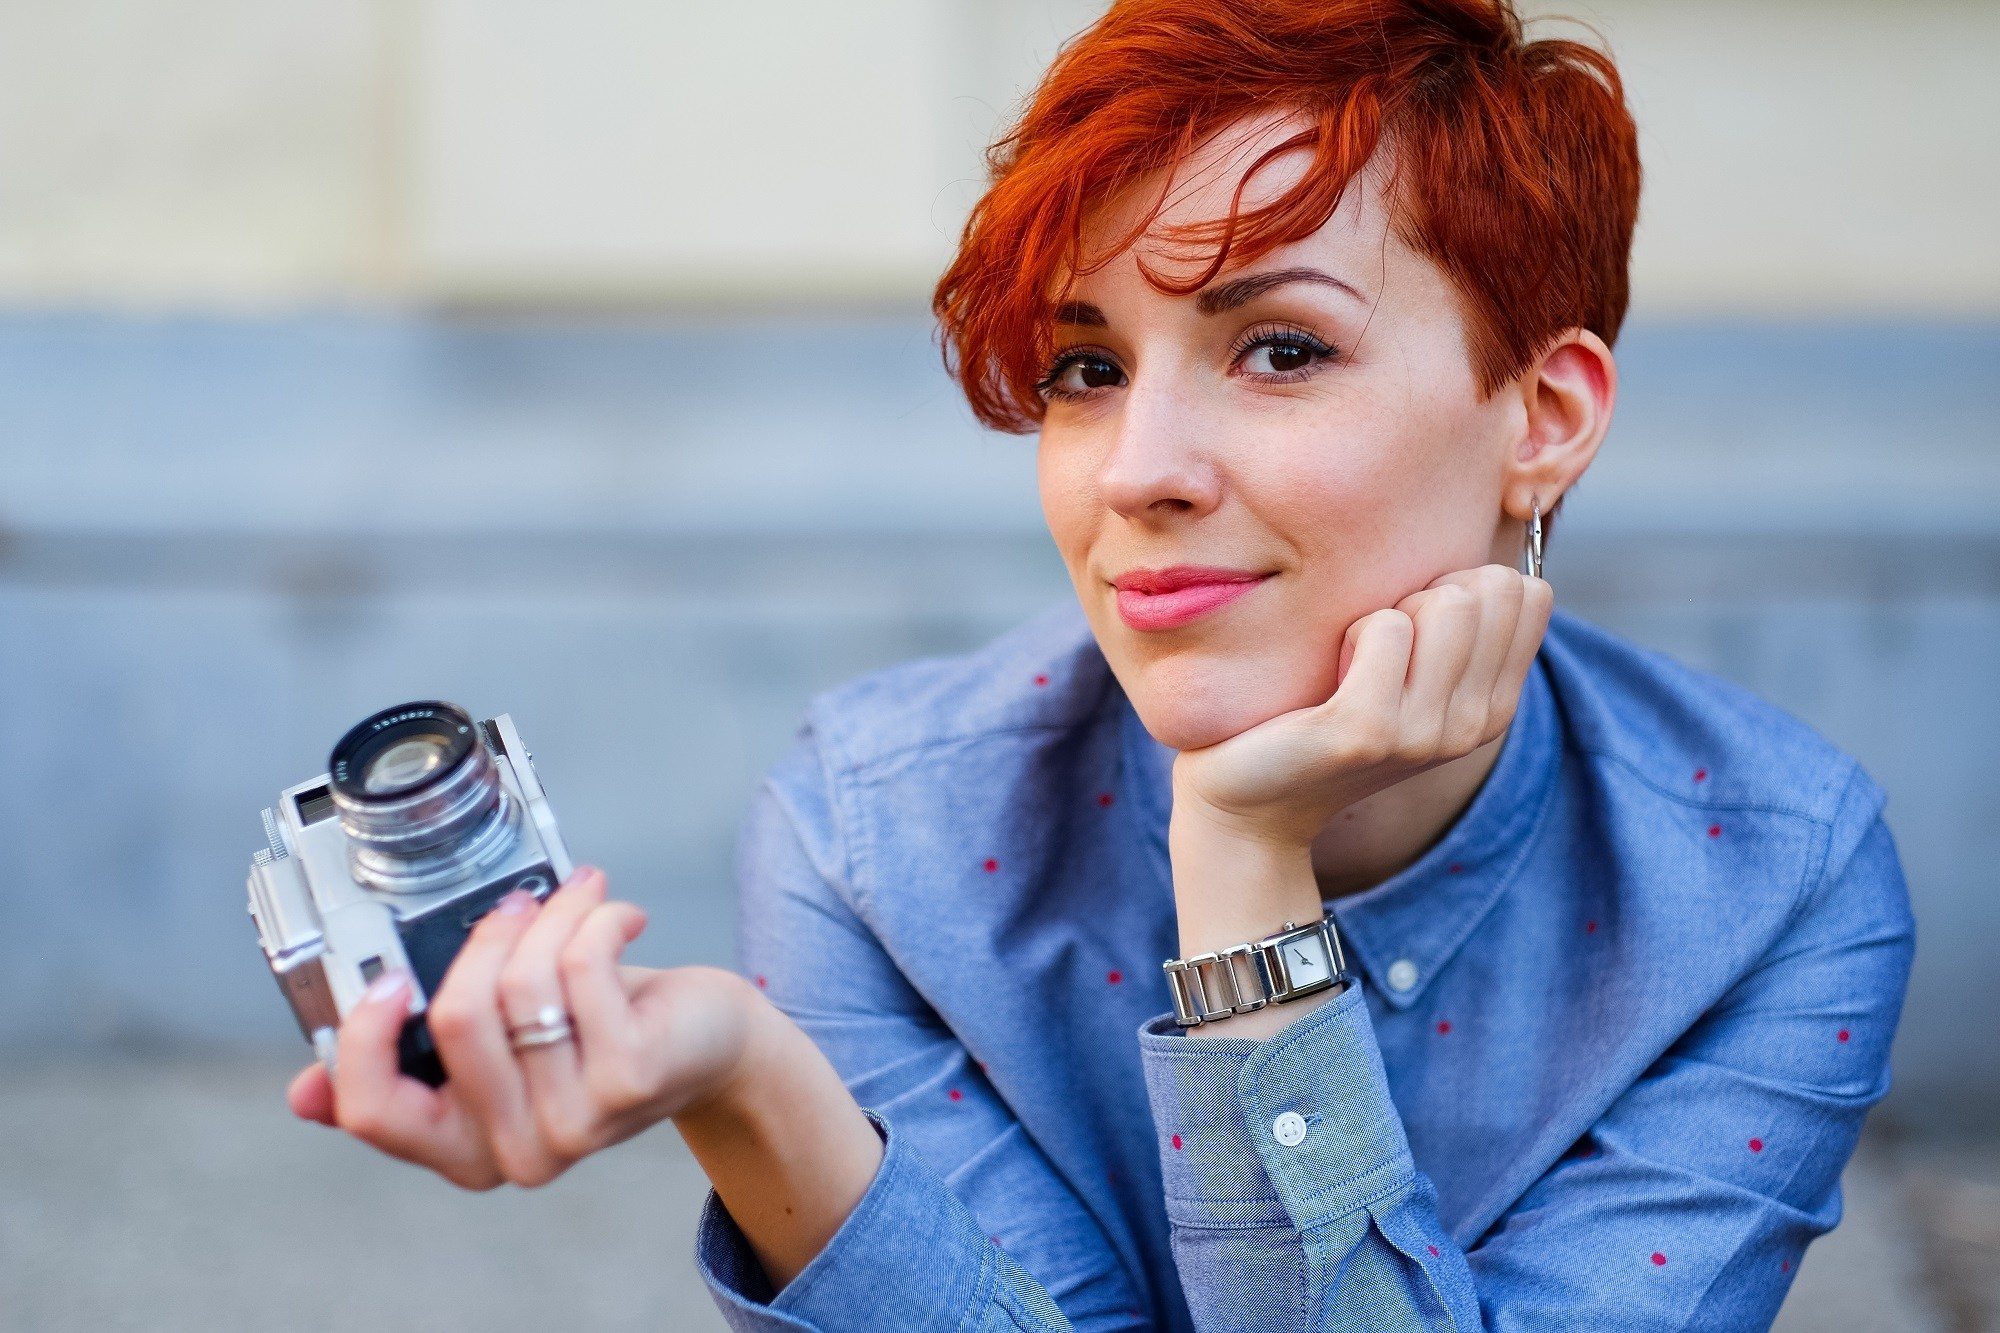 Short red hair: Woman with red pixie cut